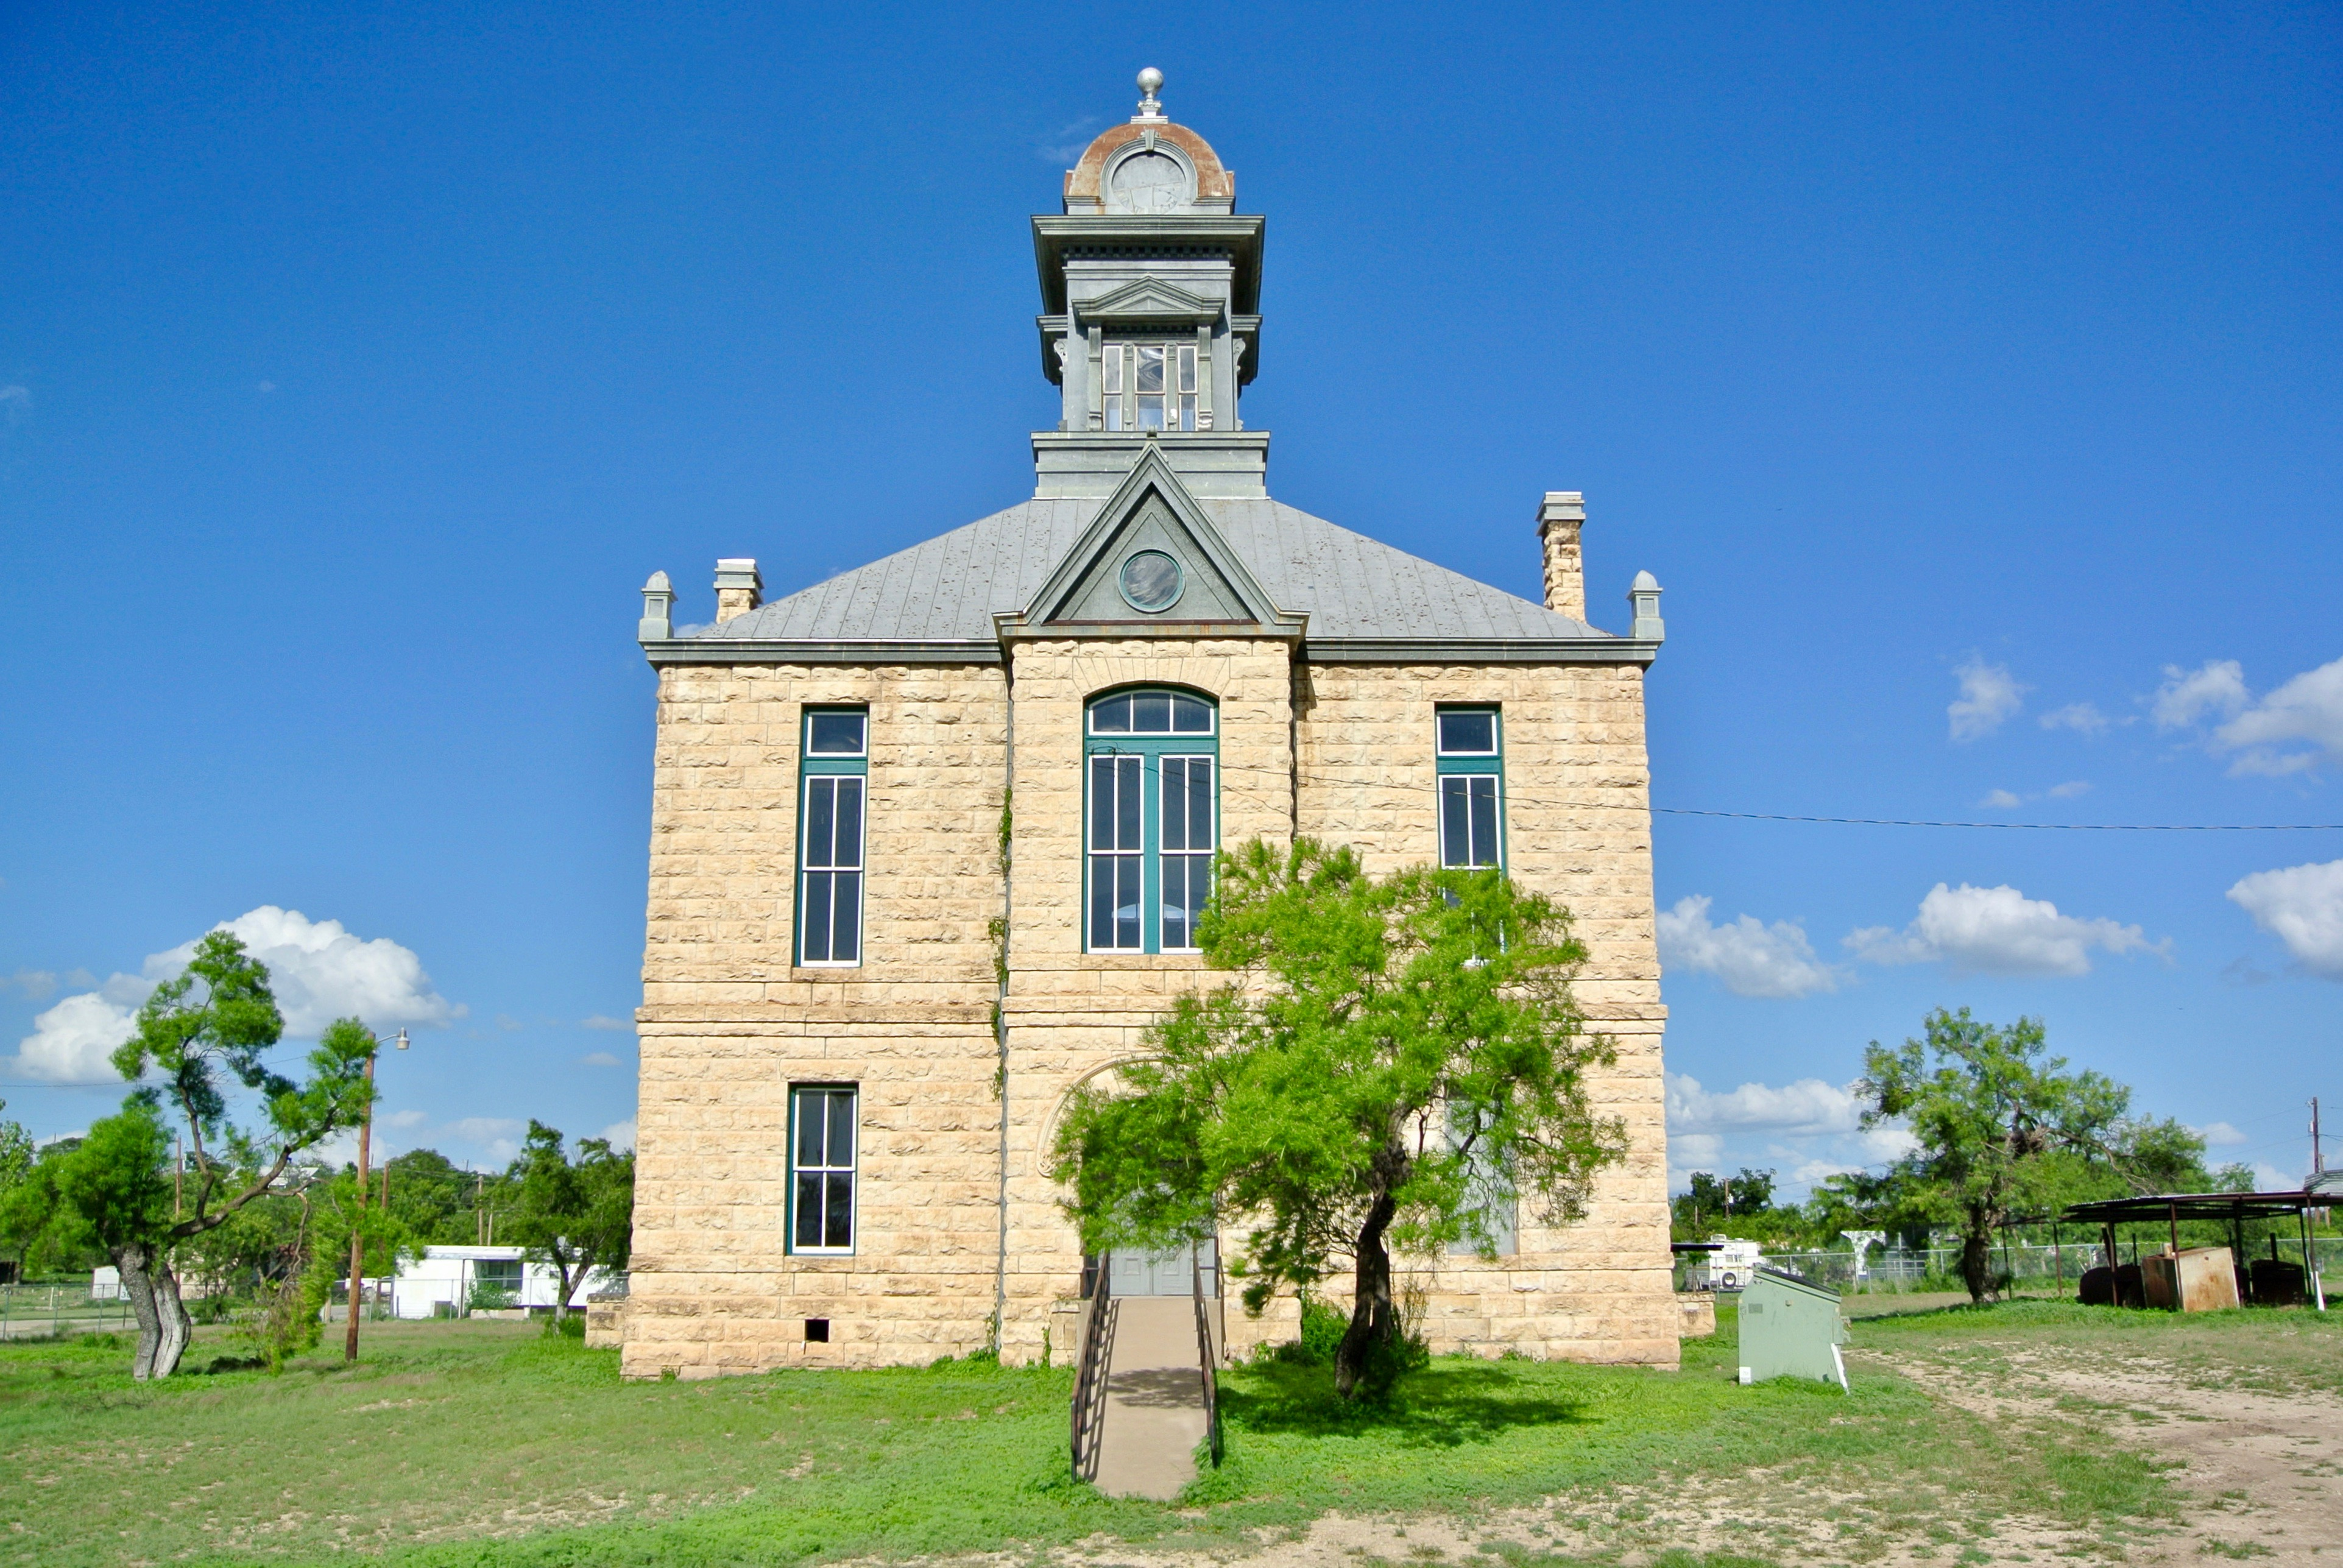 Irion County Courthouse Sherwood